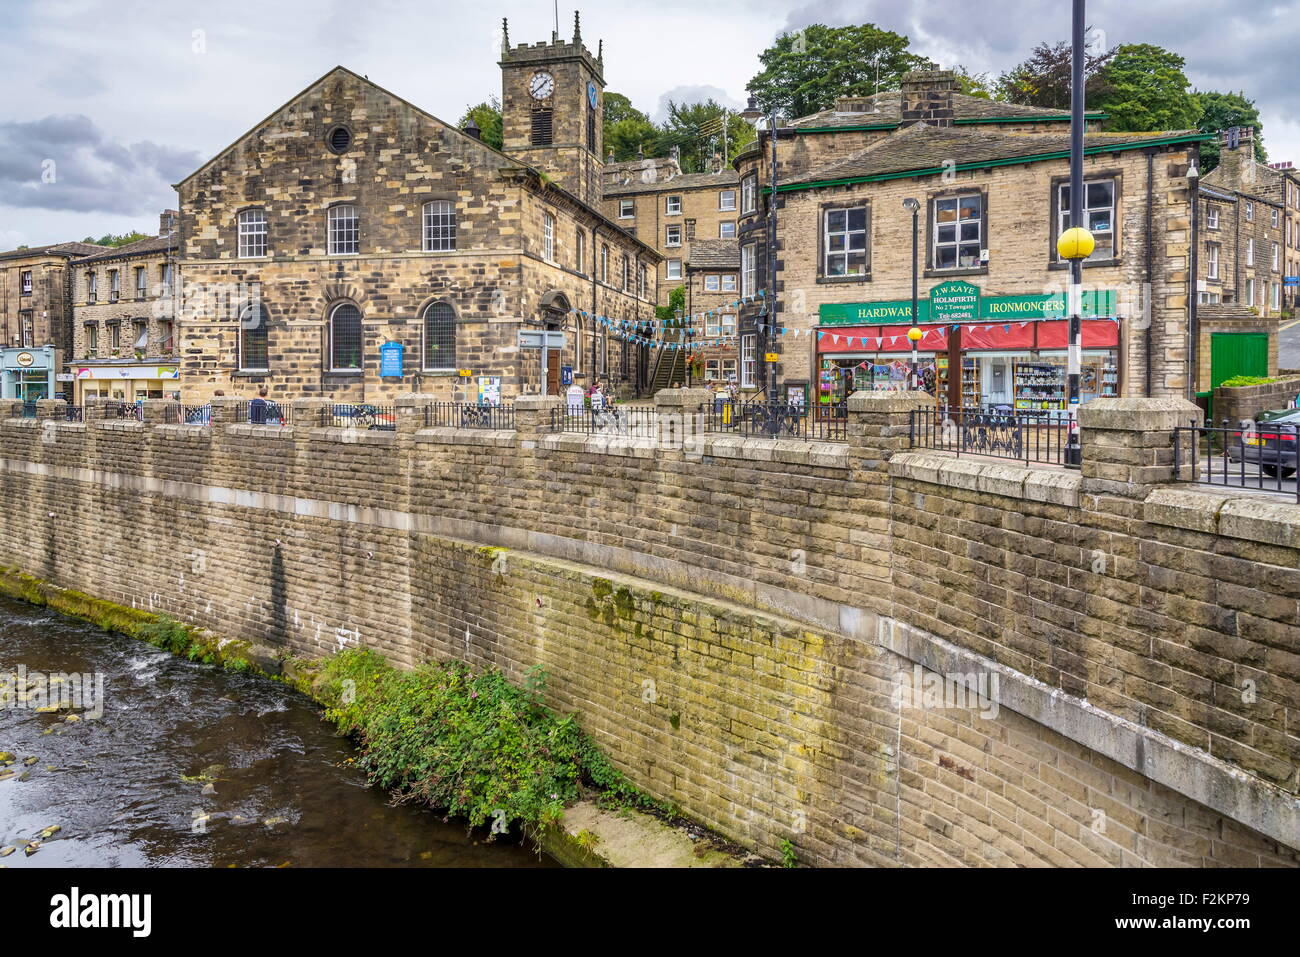 Le centre de Holmfirth emplacement de la série tv Last of the Summer Wine à Holmfirth dans West Yorkshire. Photo Stock